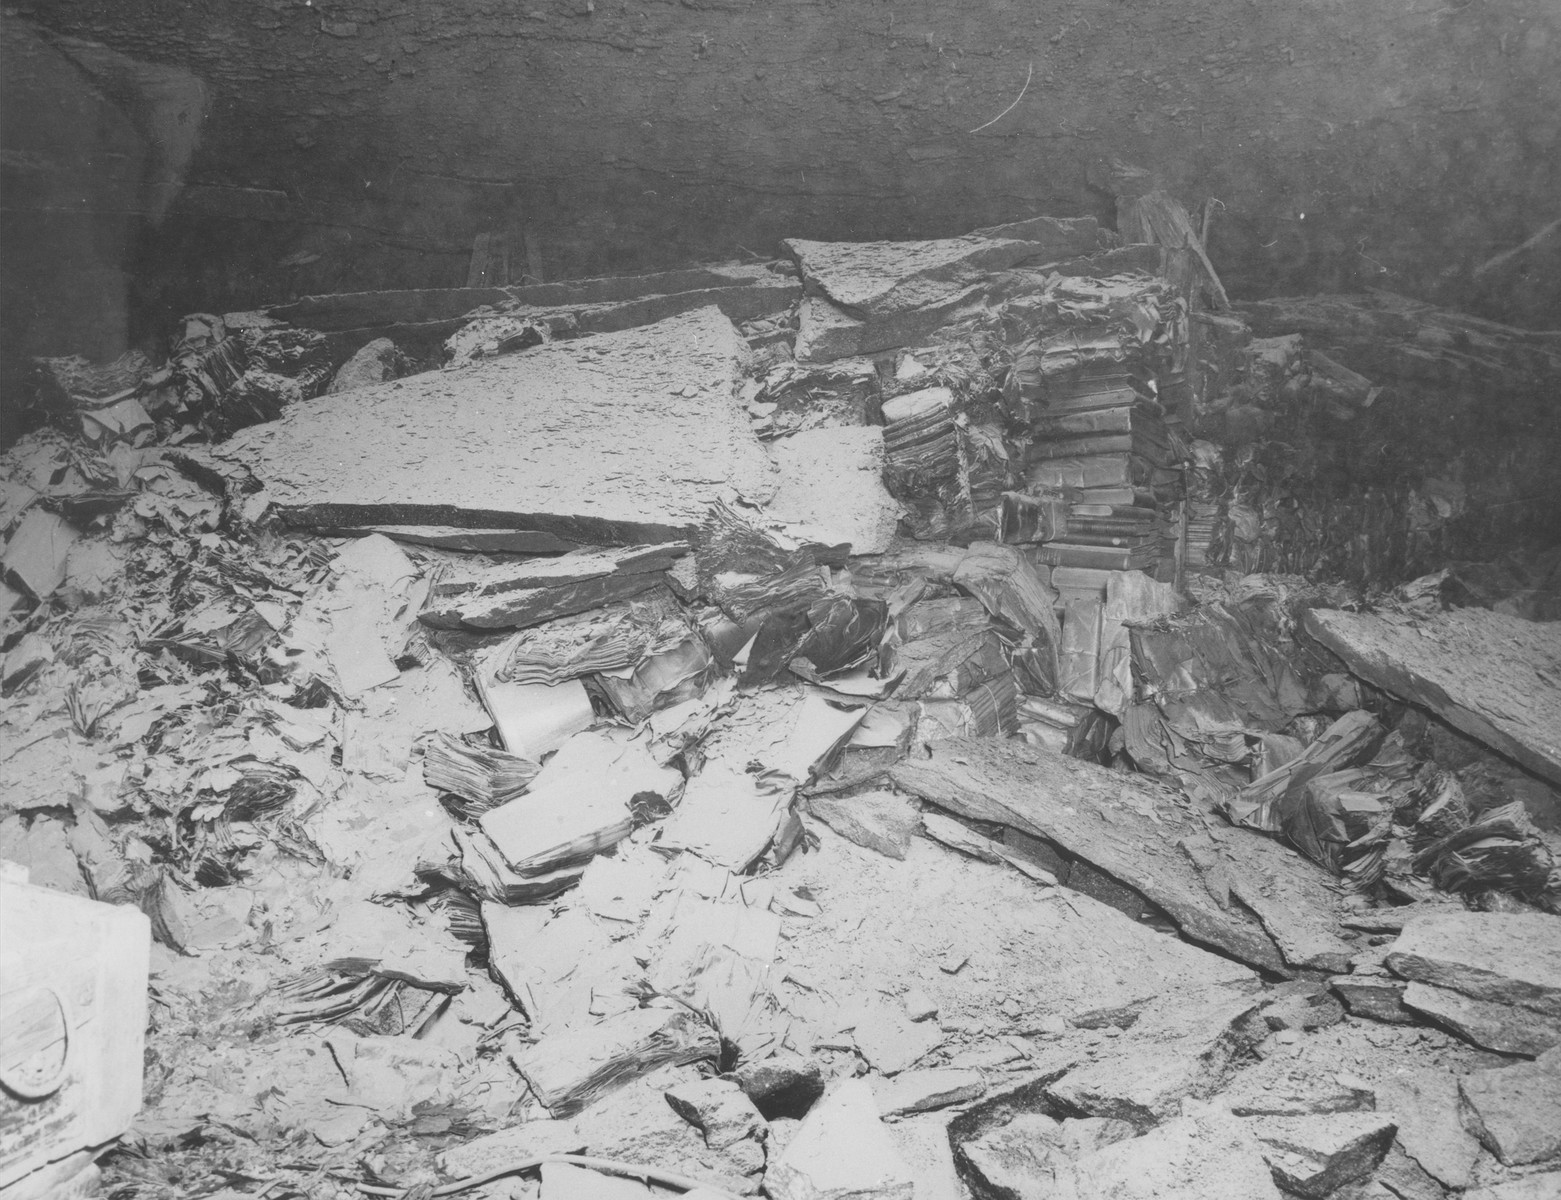 View of the charred remains of books from libraries in Berlin and Marburg that had been stored in a salt mine near Heimboldshausen, Germany.    According to American military sources, the books were burned in the salt mines by displaced persons.